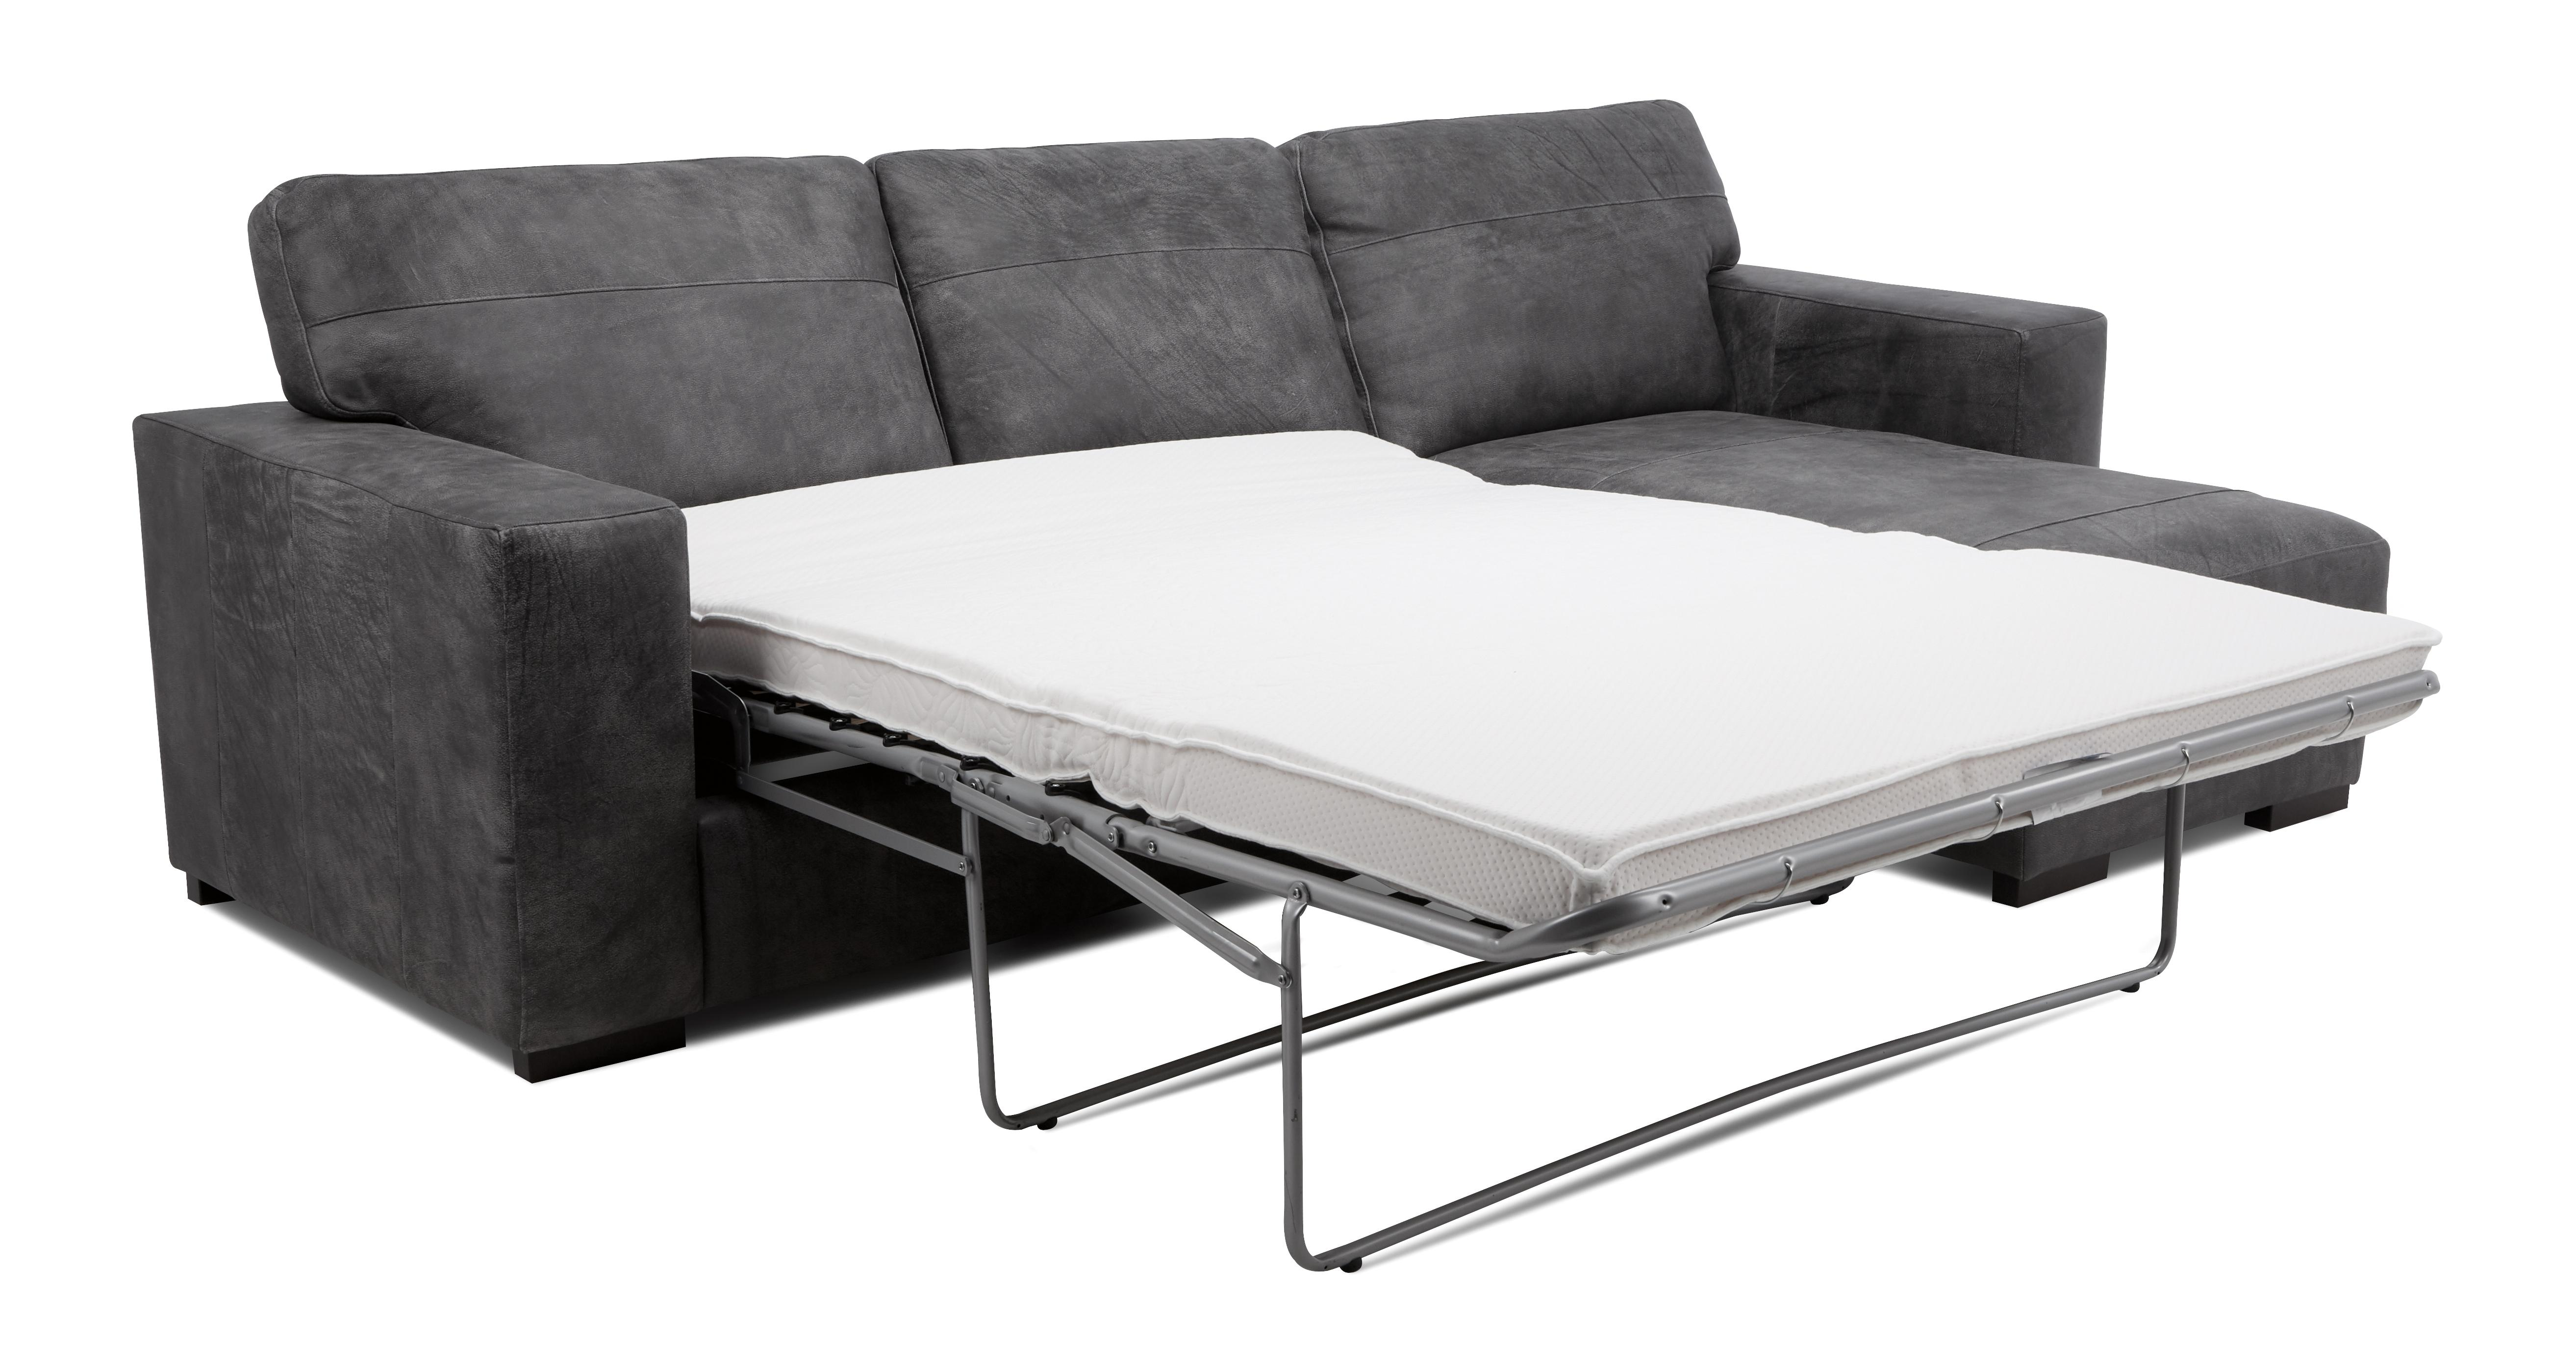 Julius Right Hand Facing Chaise End Storage Deluxe Sofa Bed Grand ...